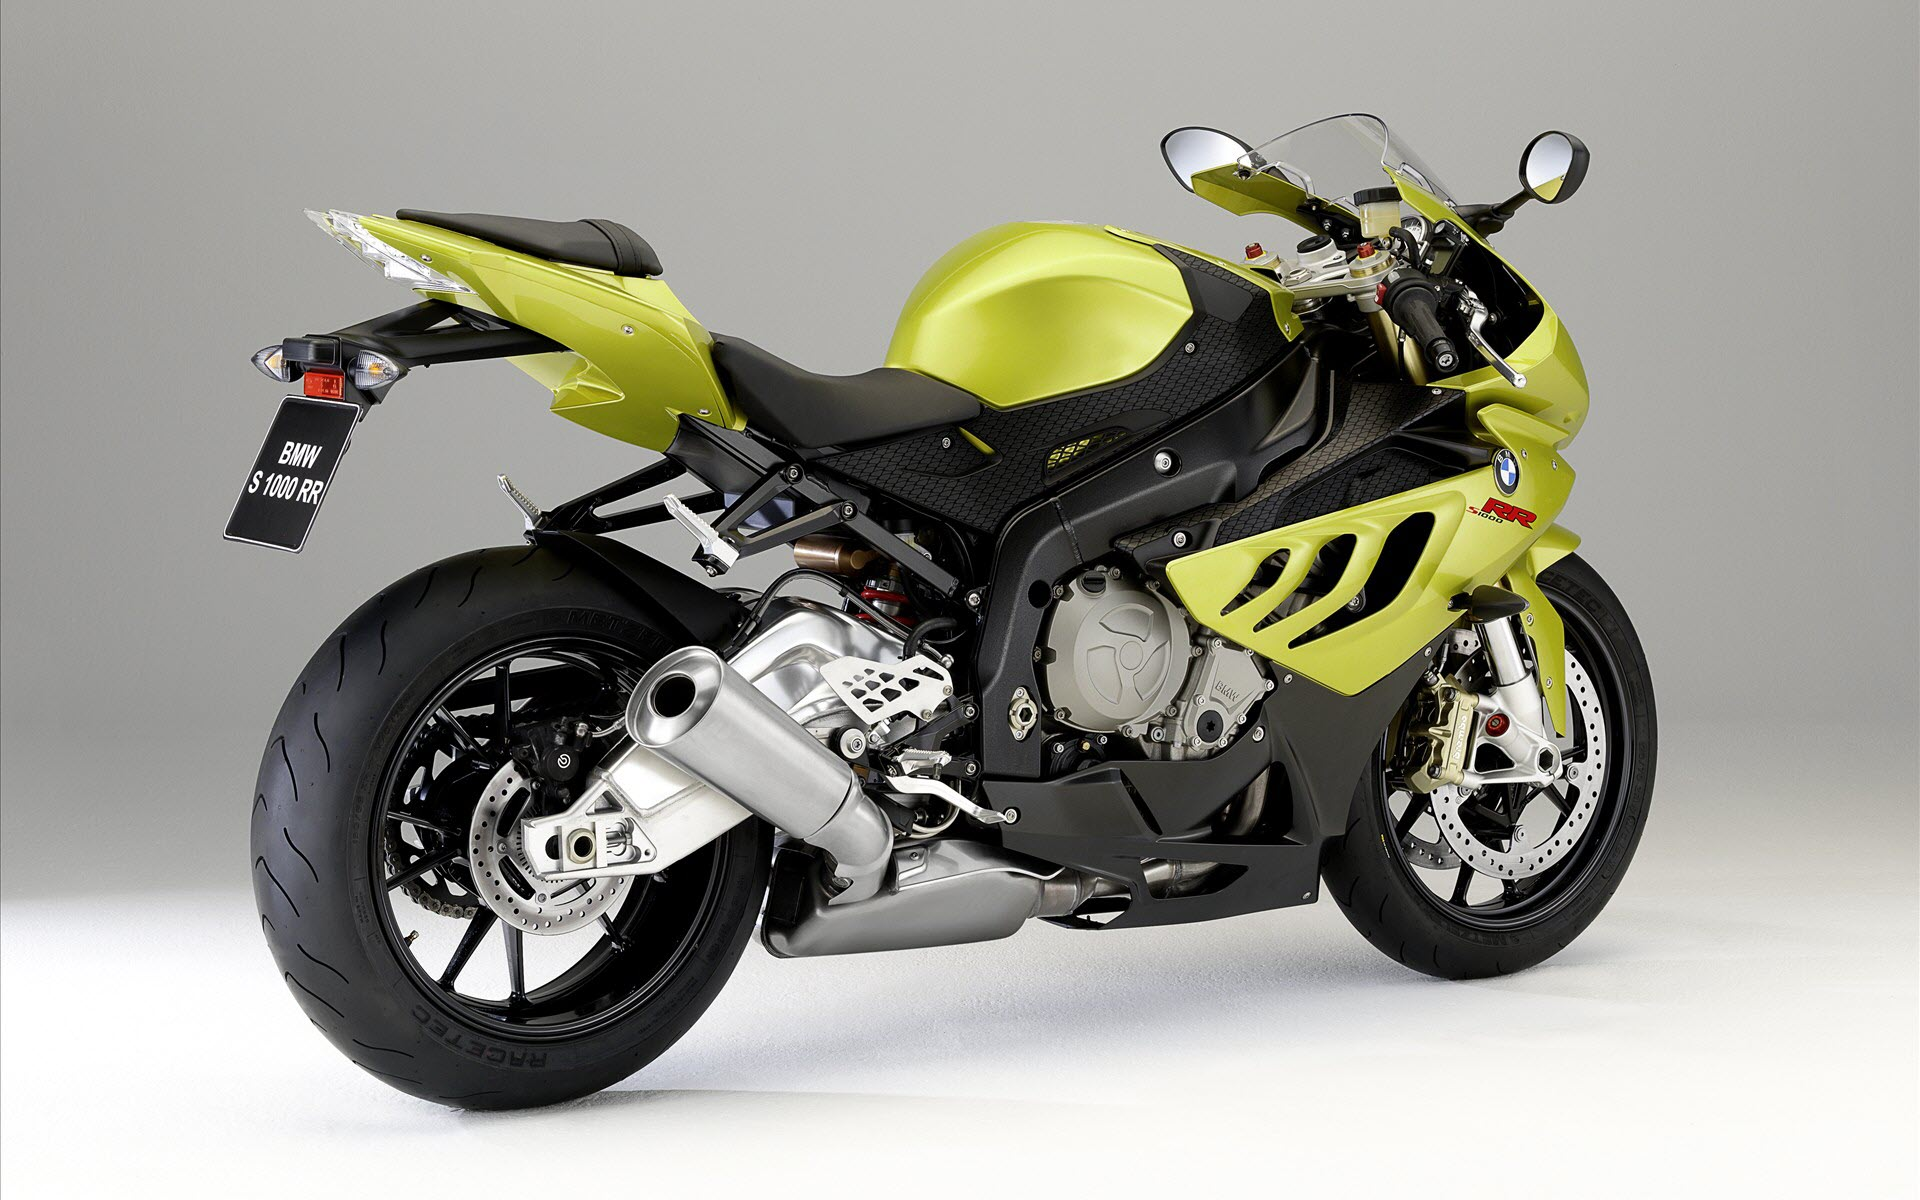 BMW 1000 RR Yellow 248.43 Kb